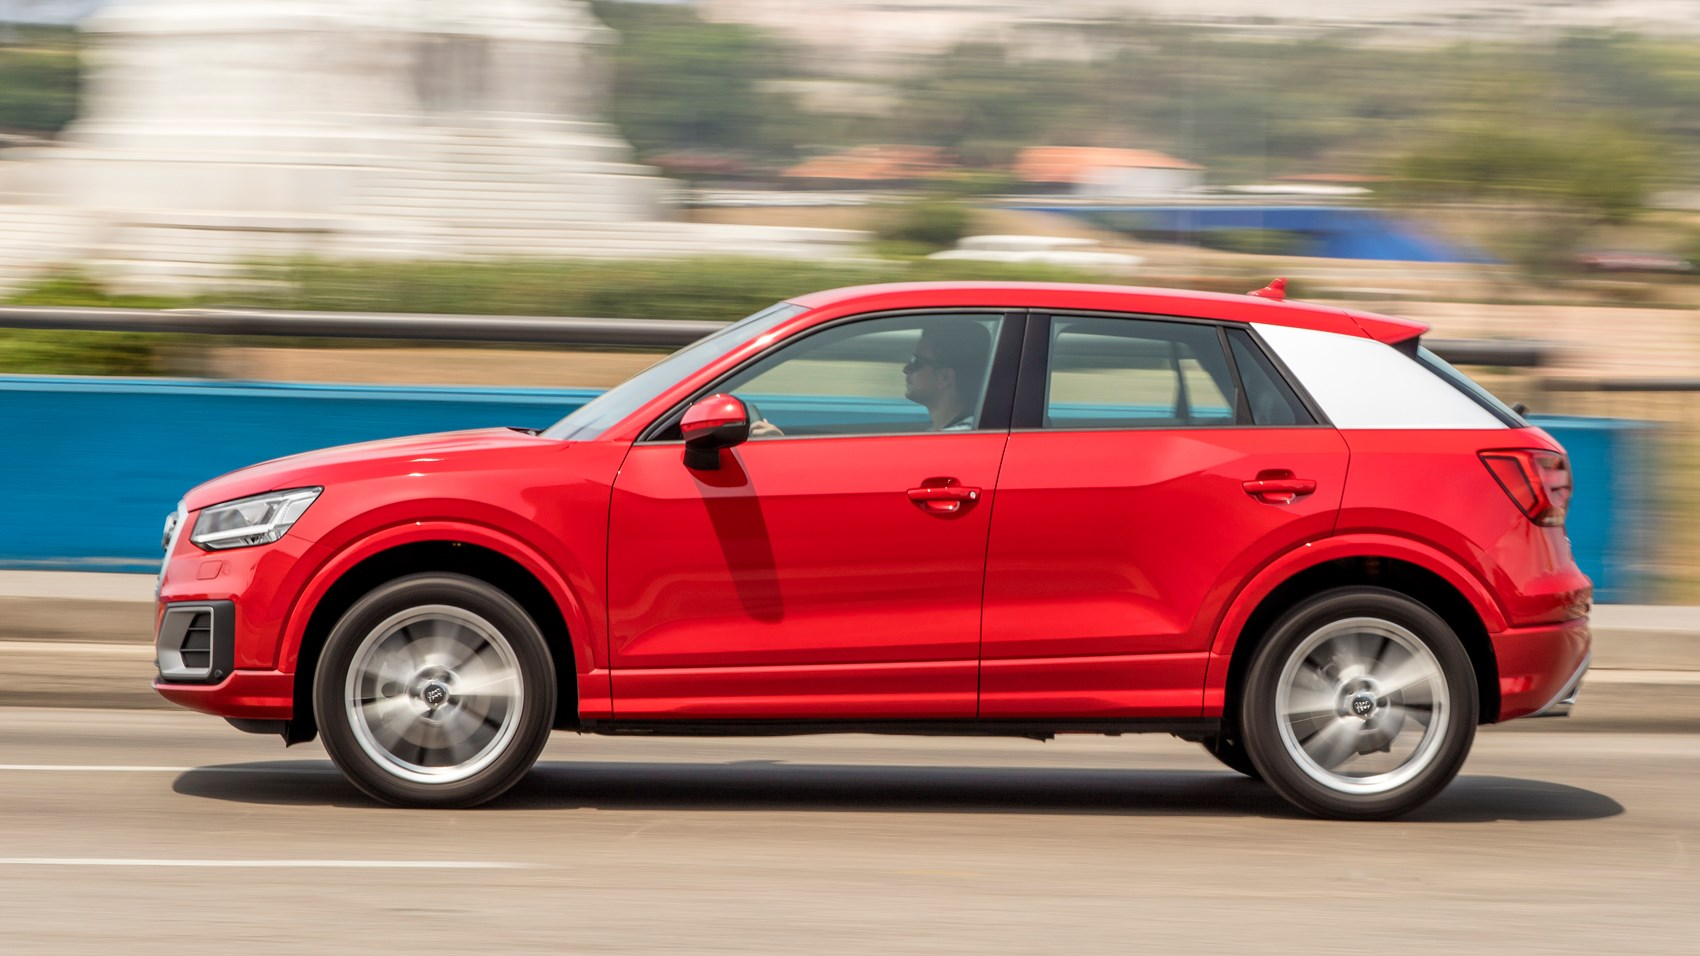 Audi Q2 By CAR Magazine